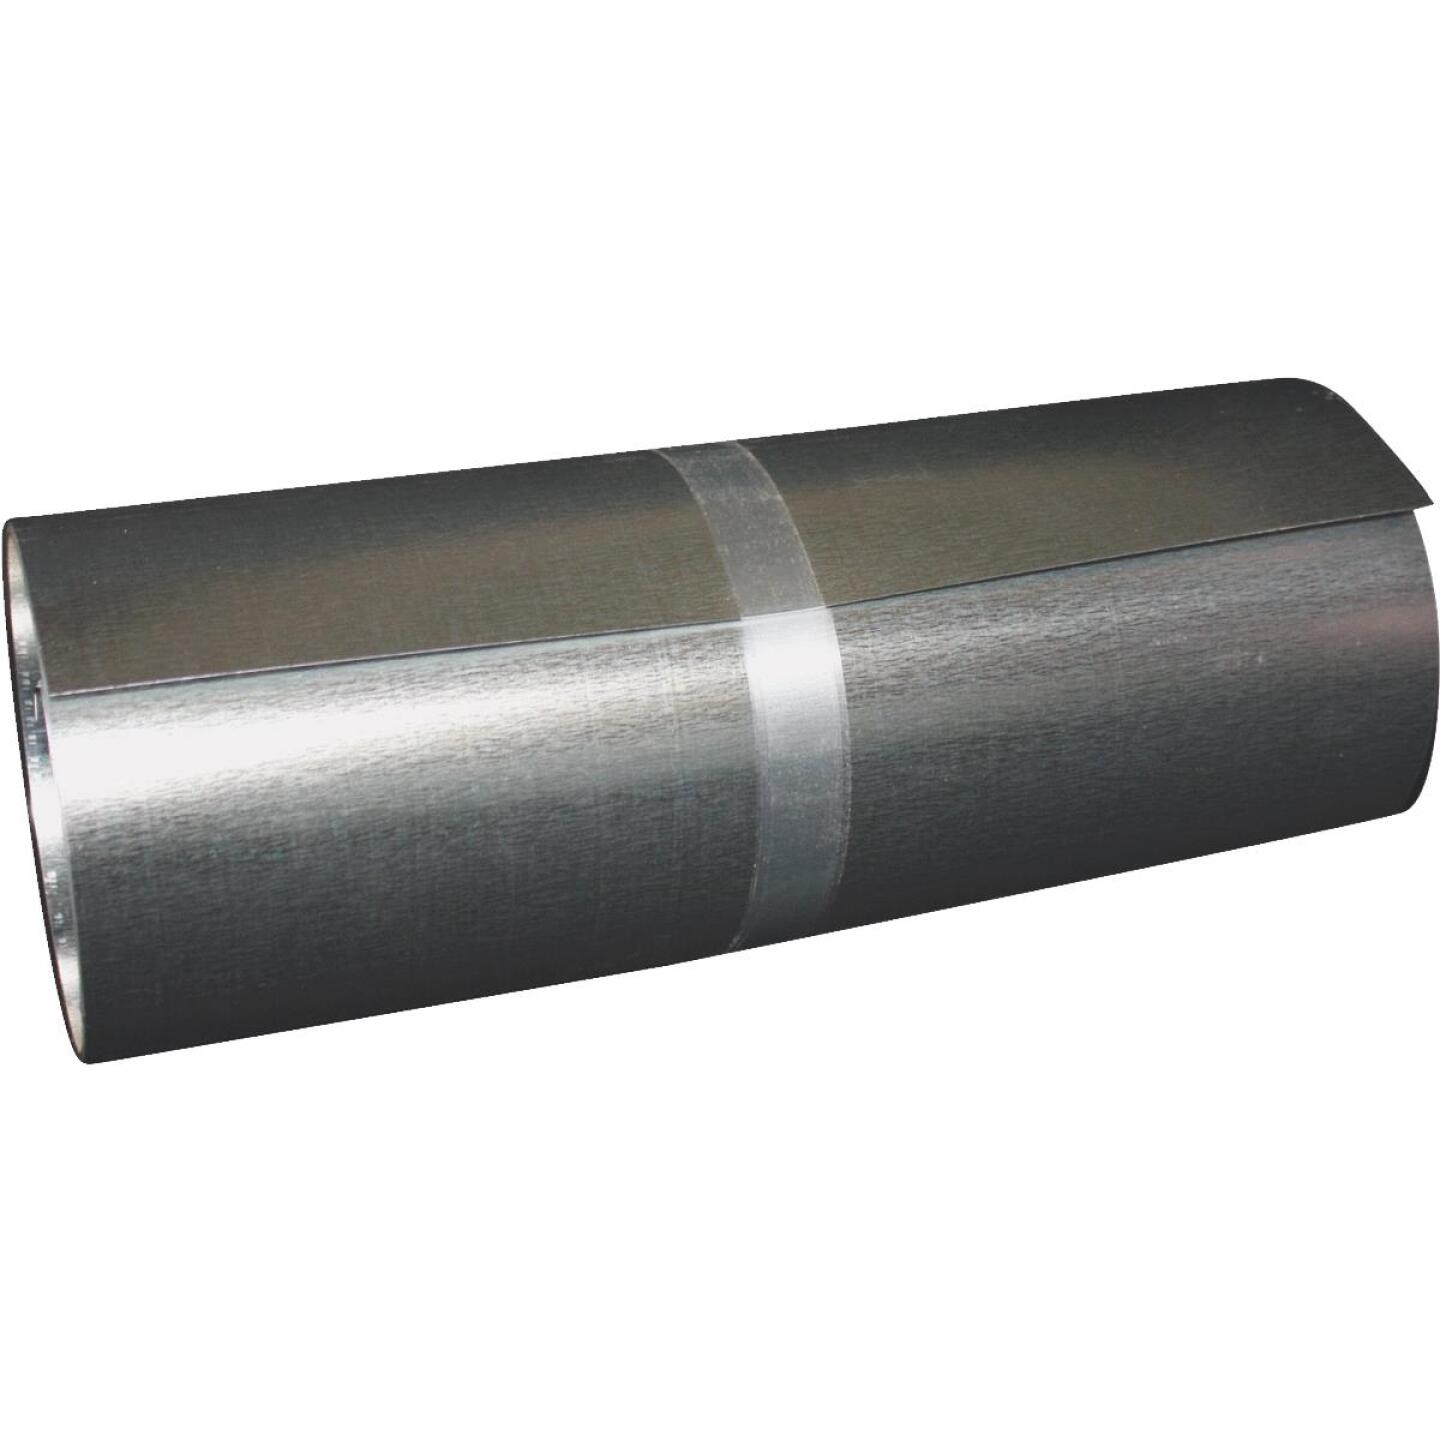 Klauer 24 In. x 25 Ft. Mill Galvanized Roll Valley Flashing Image 1